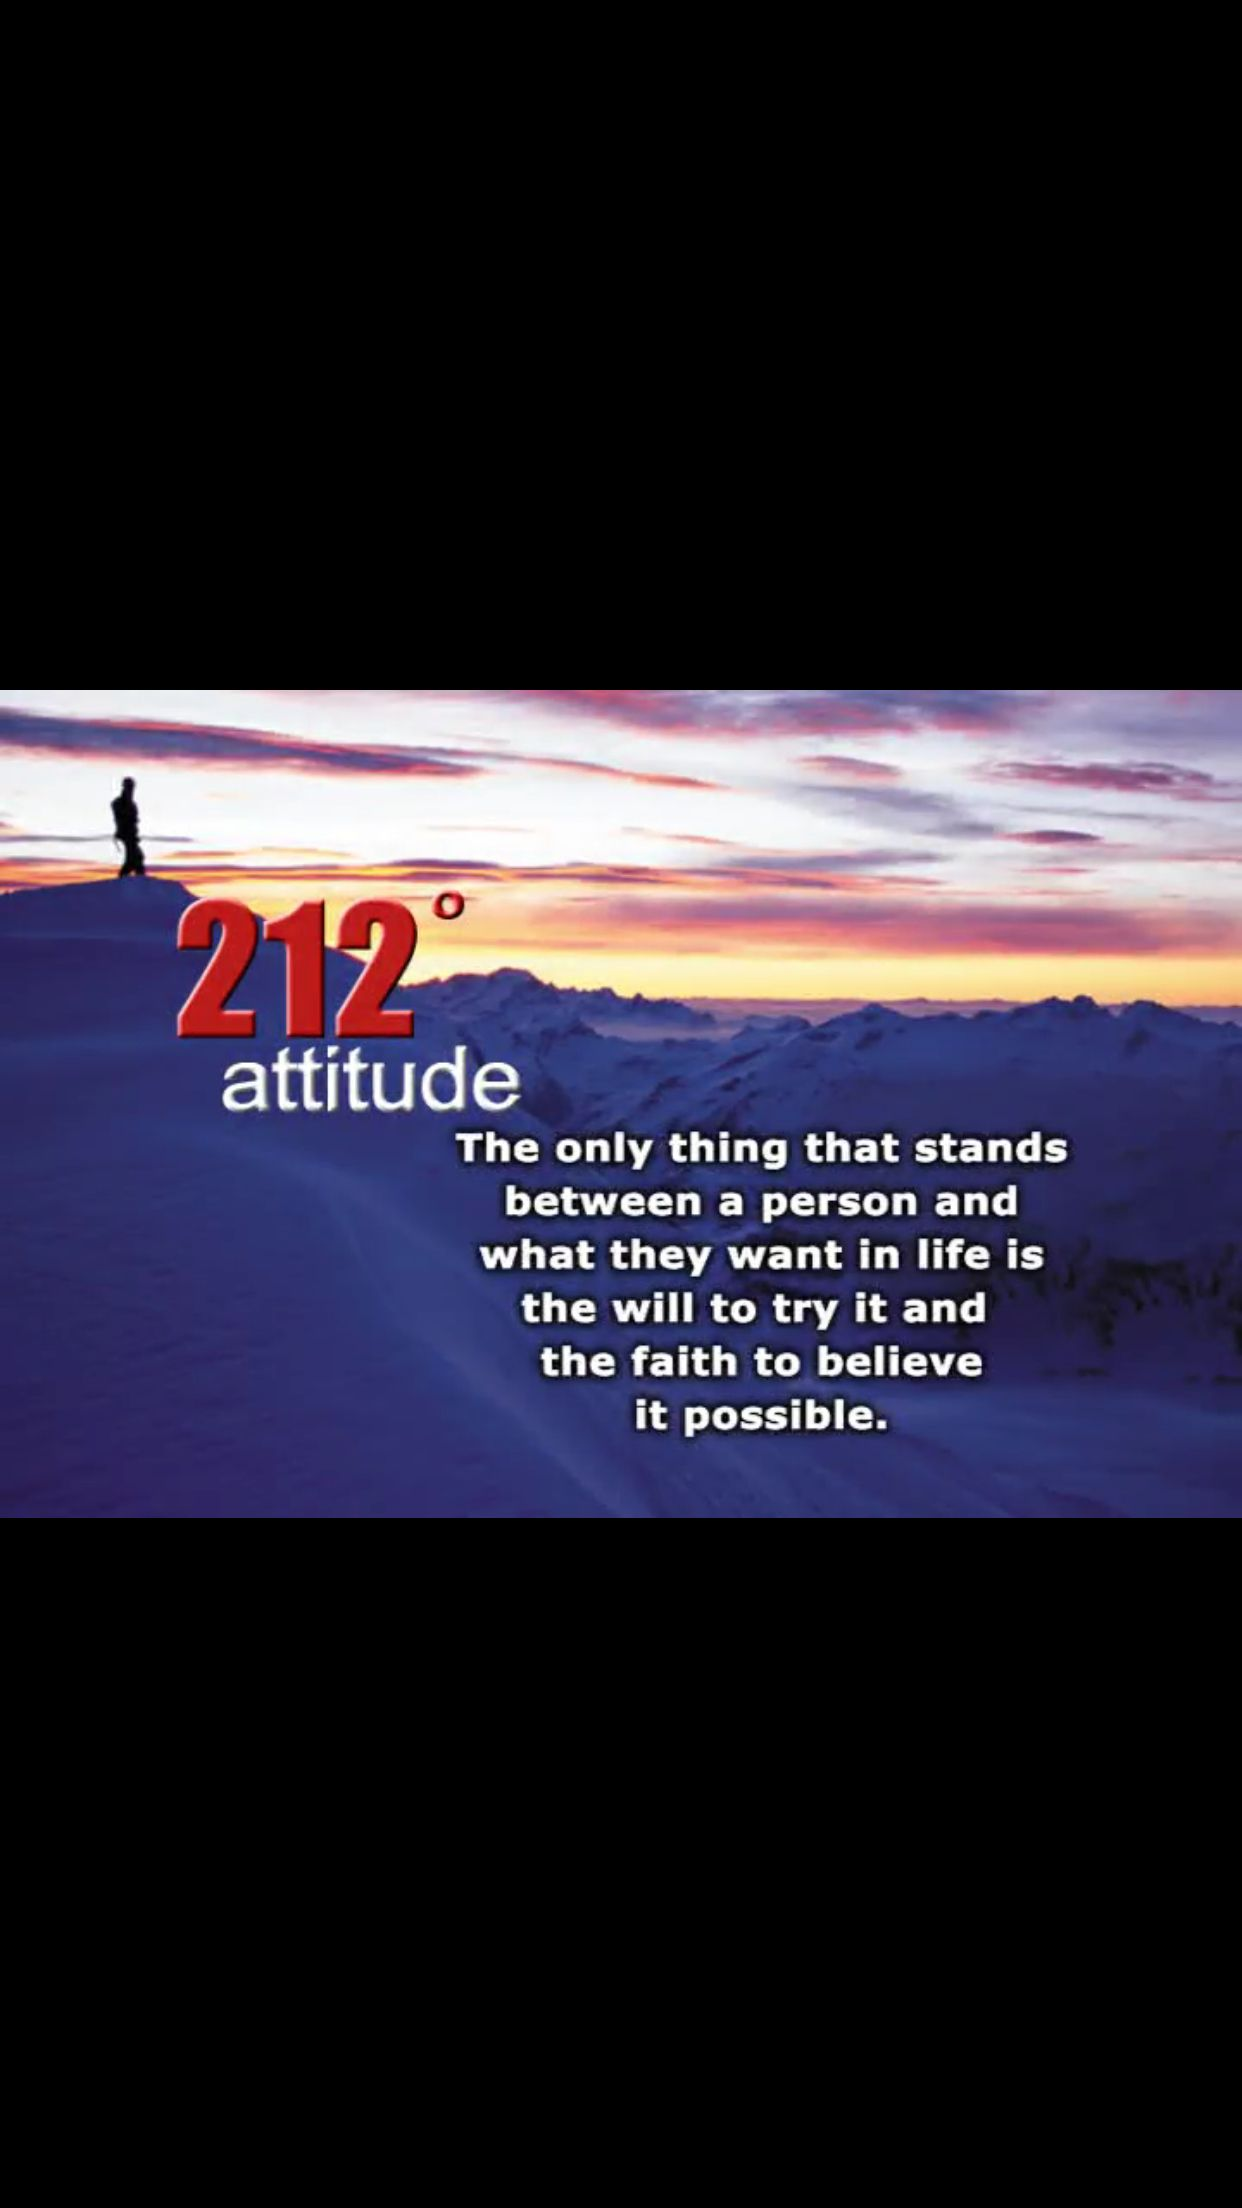 212 Degrees Attitude Degree Quotes Motivational Quotes Quotes For Students